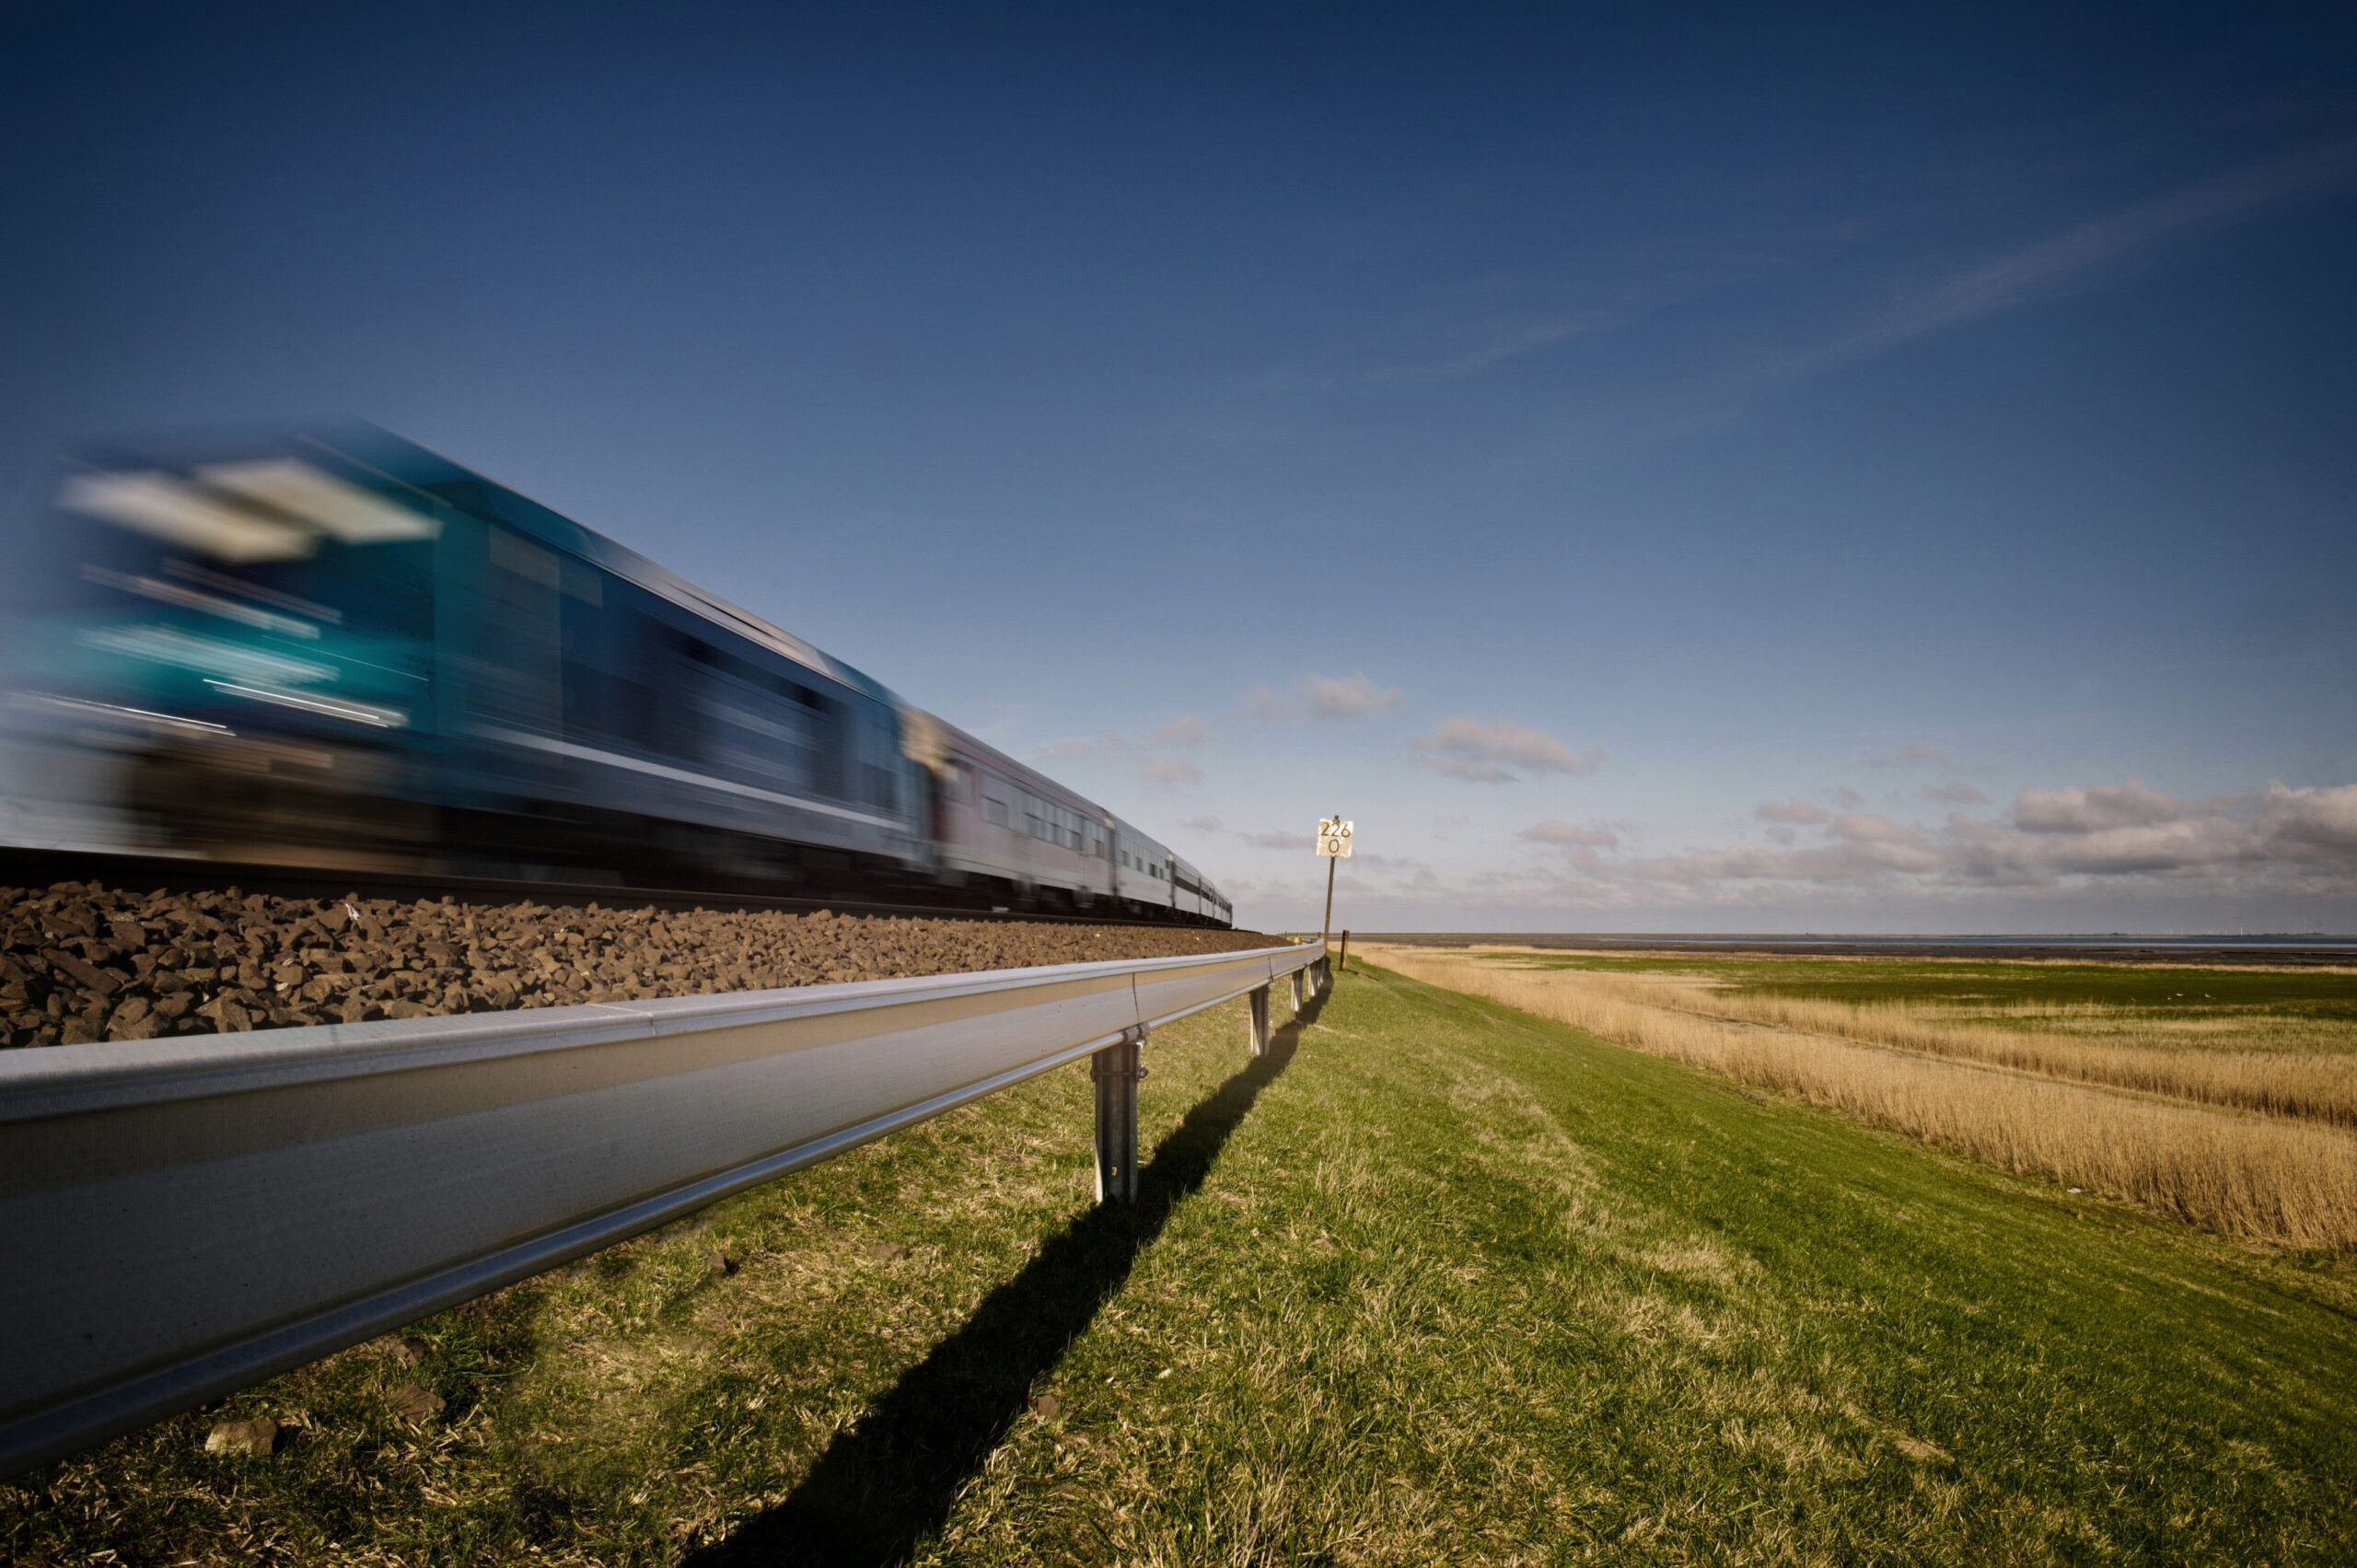 The ARCOSYSTEM post-mounted lineside in Sylt, Germany